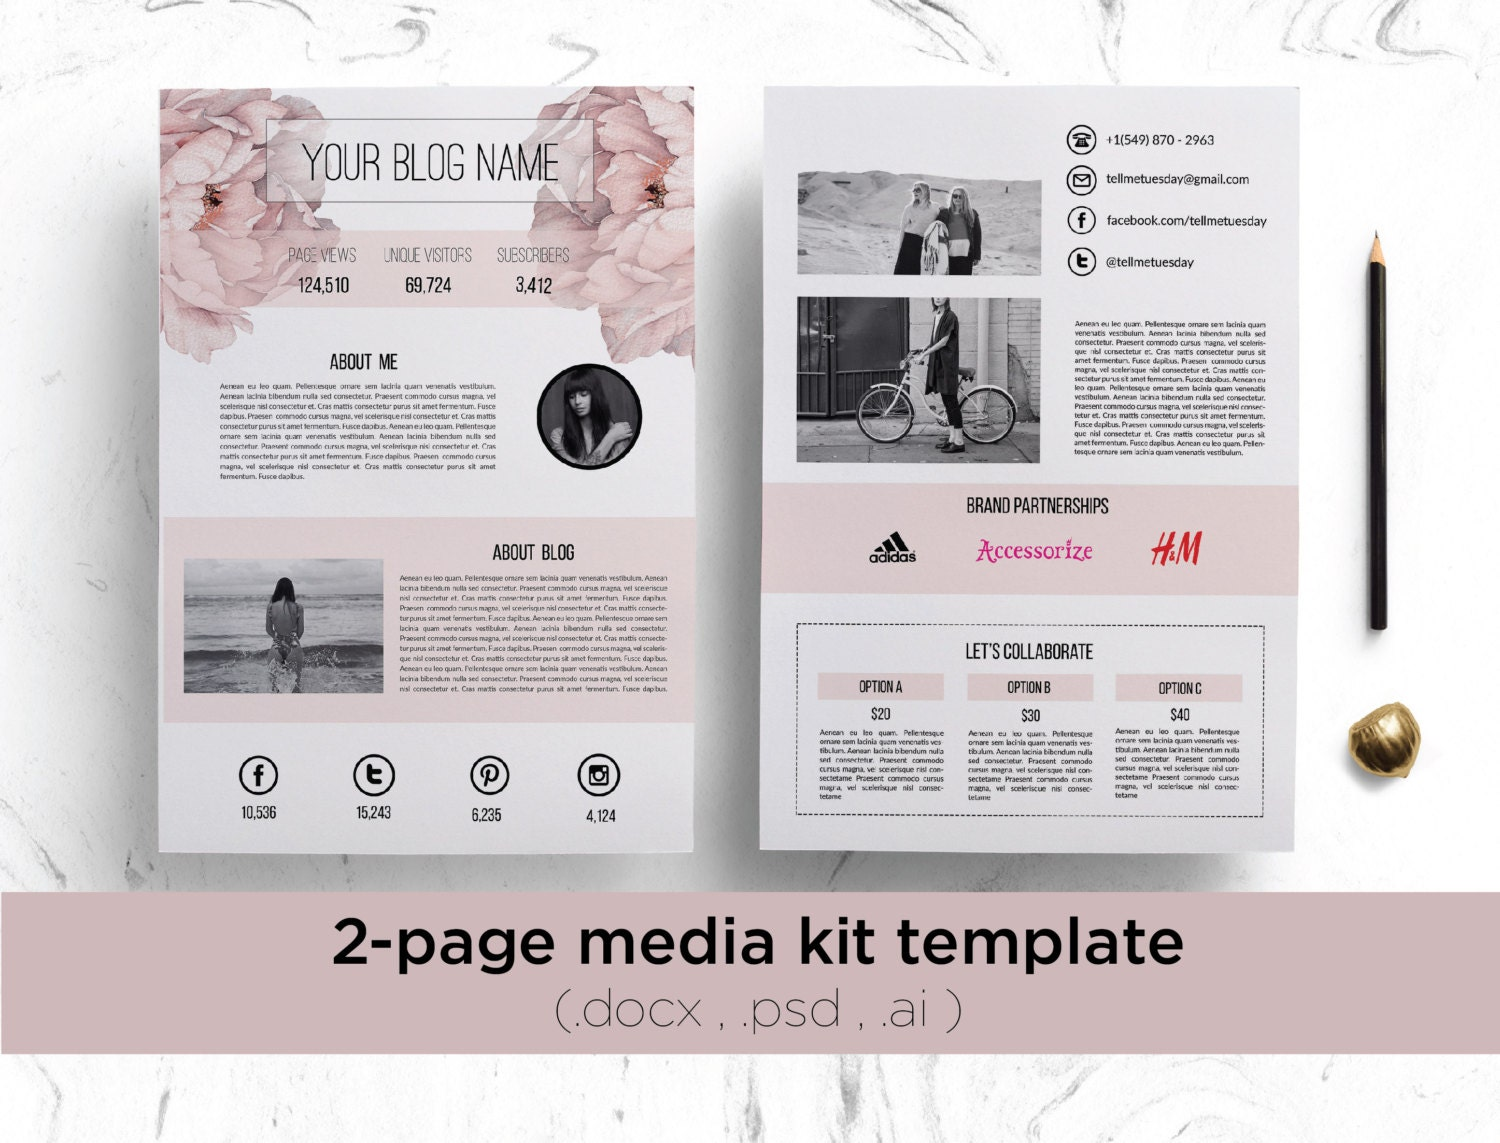 2 page media kit template floral background    elegant blog